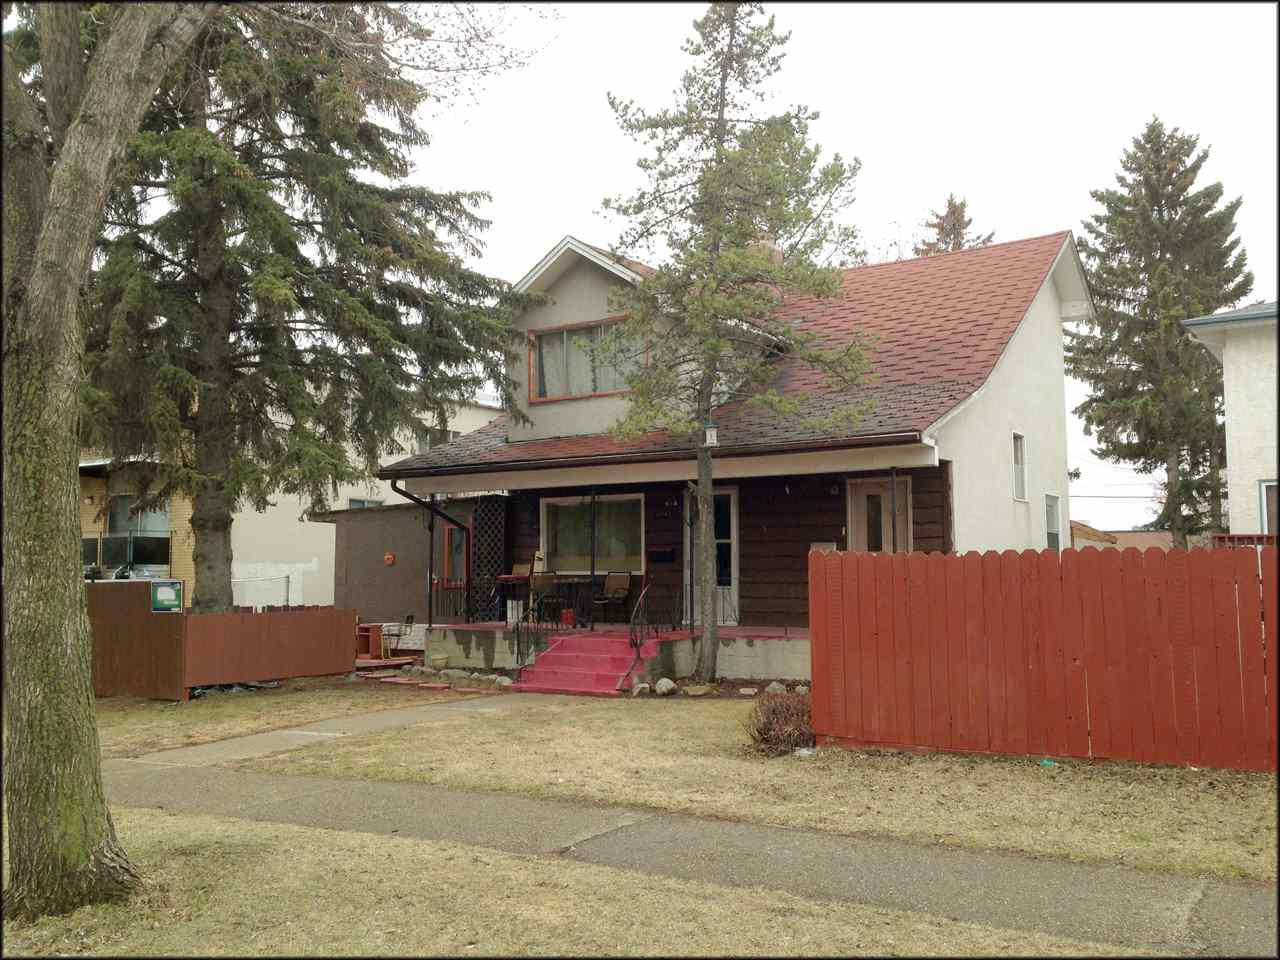 Main Photo: 11942 81 Street in Edmonton: Zone 05 House for sale : MLS(r) # E4060600